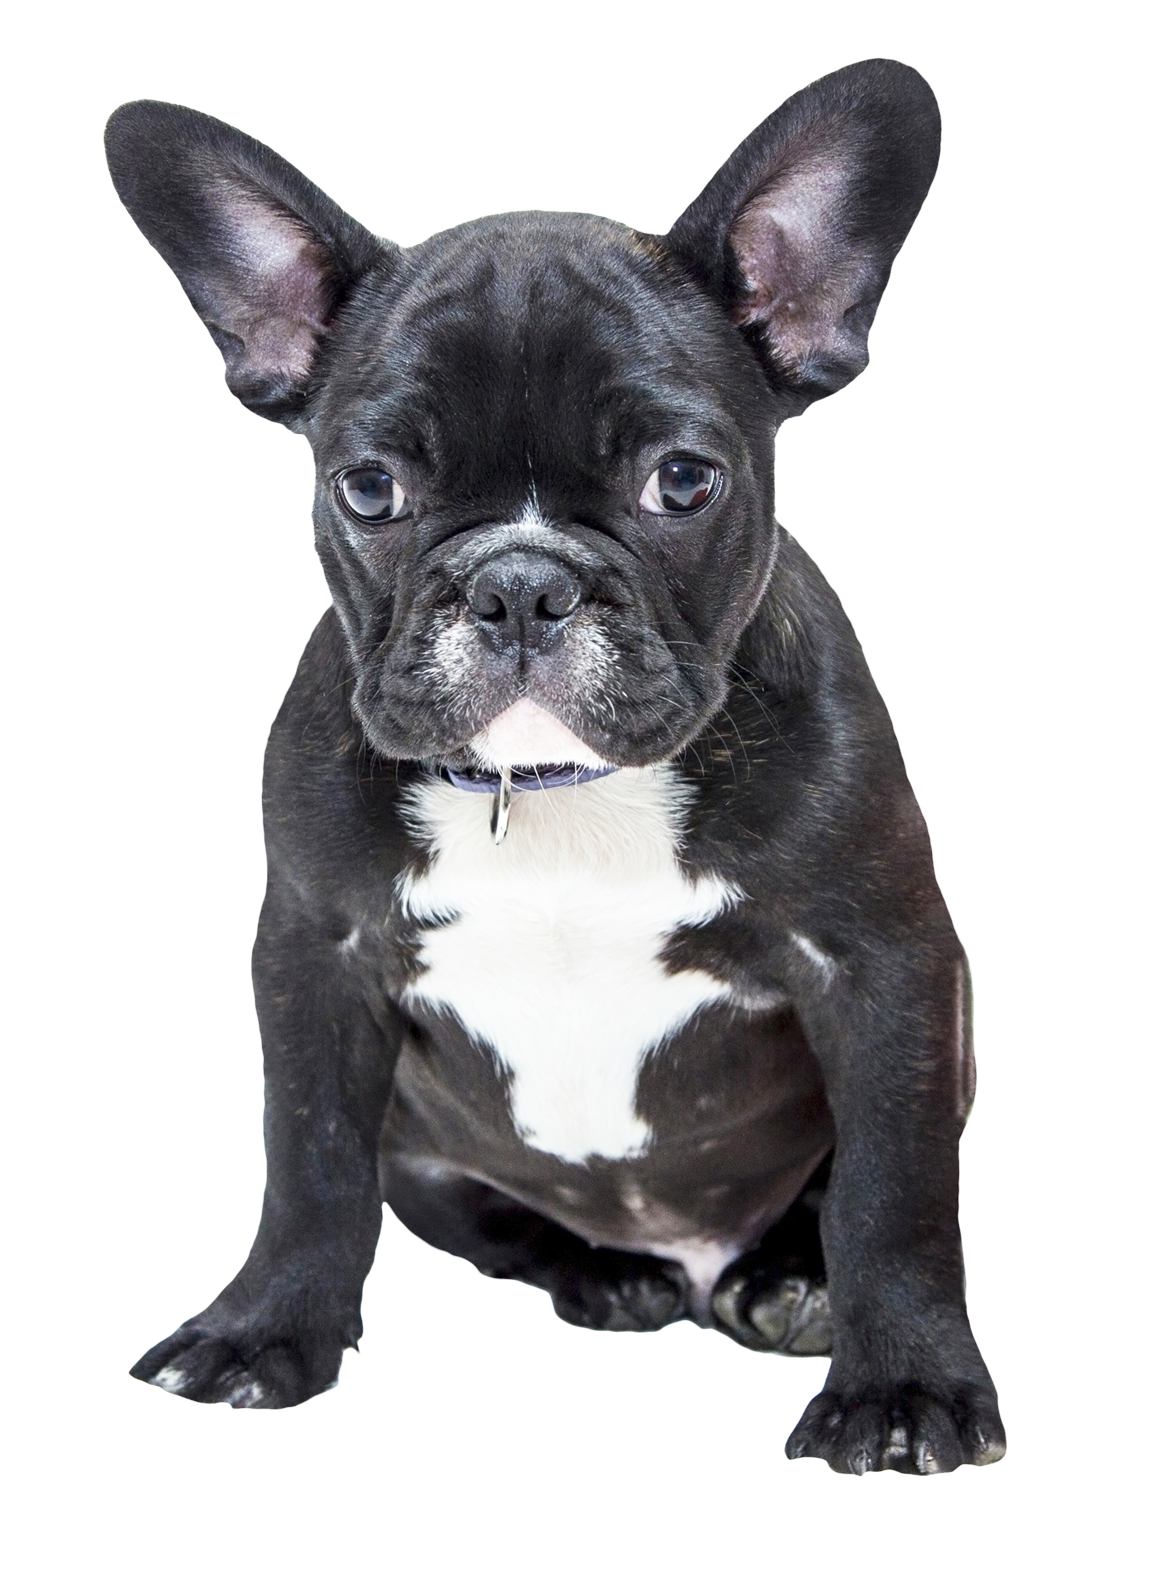 Filename: bulldog-mascot-clip